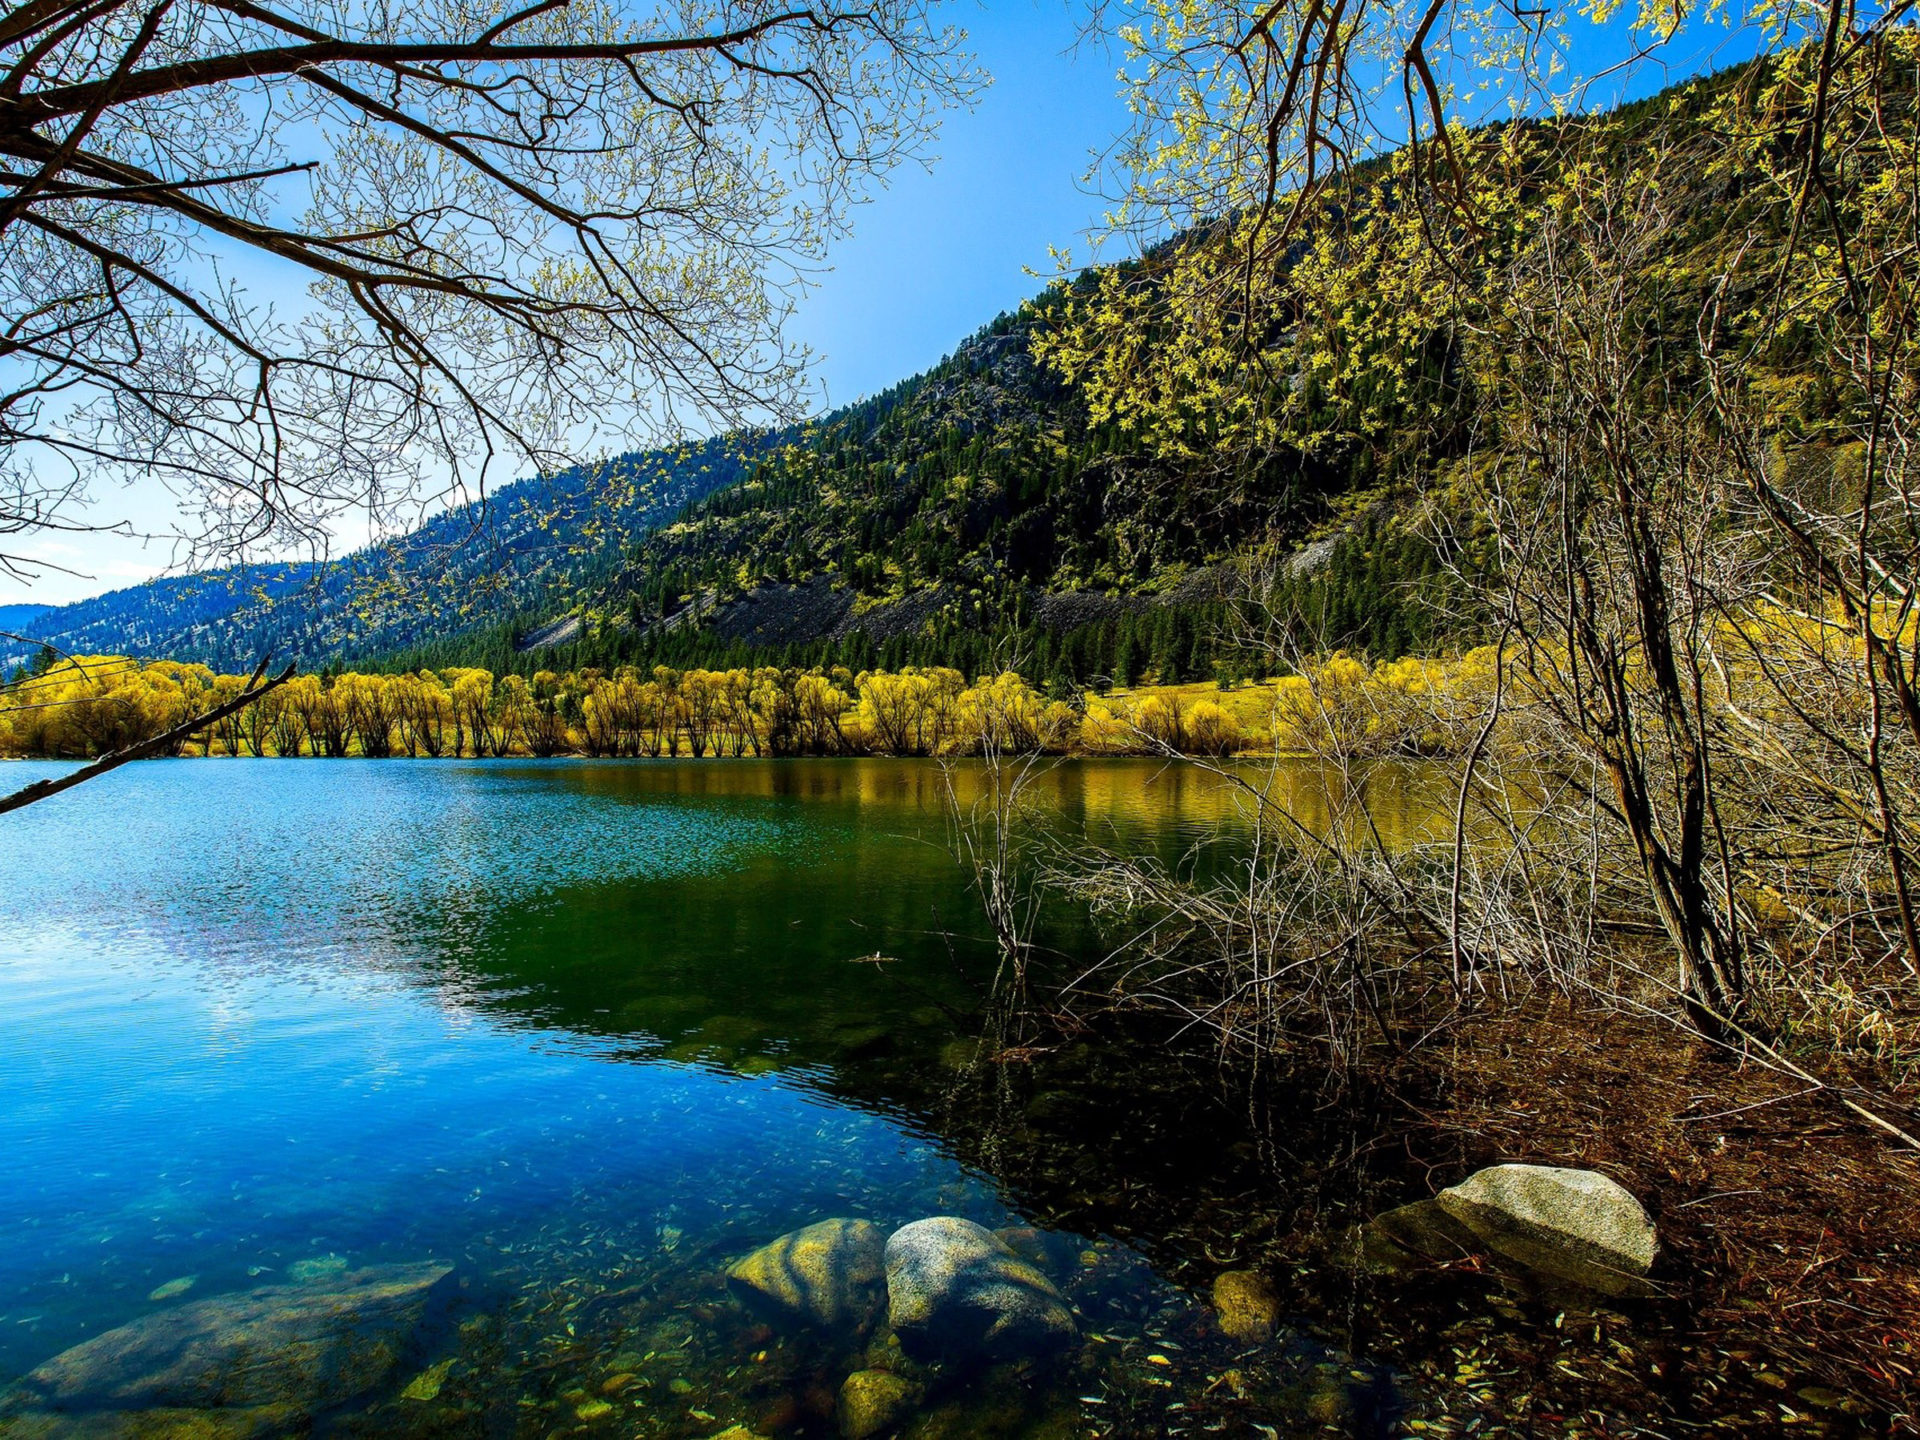 Fall Lock Screen Wallpaper Fall Lake Stones Trees With Yellow Leaves Hills With